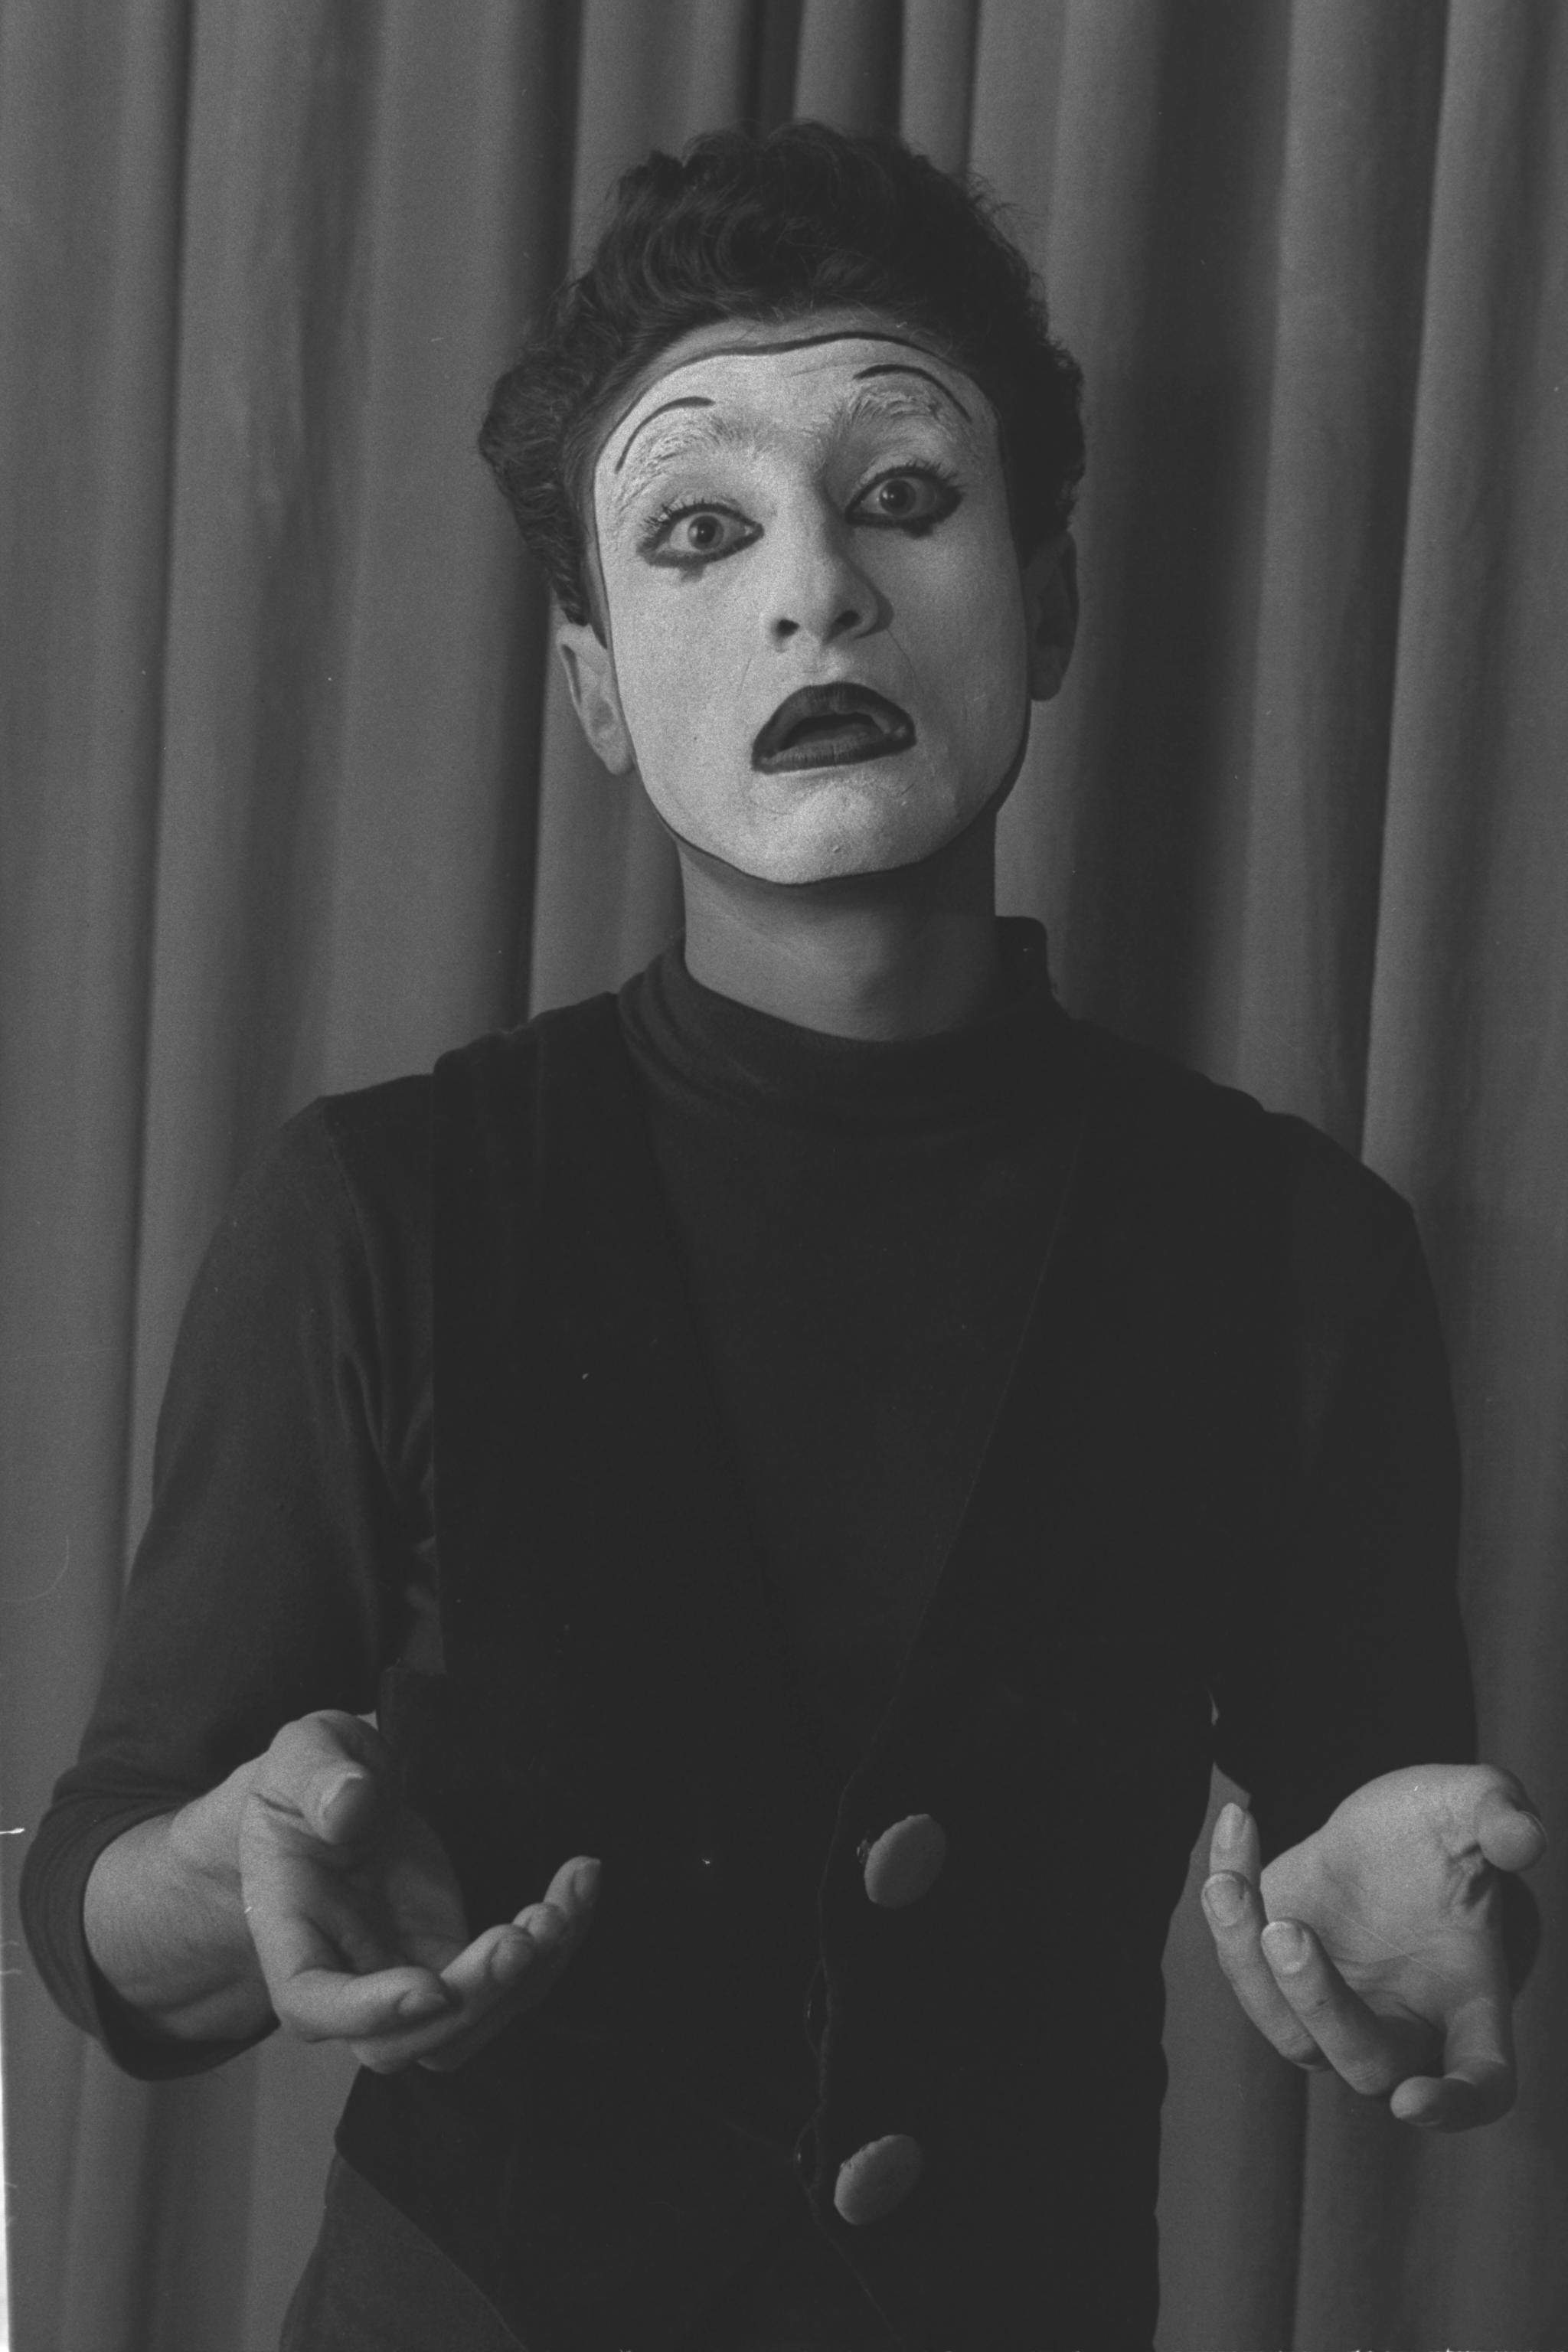 Samy Molcho a young Israeli mime artist